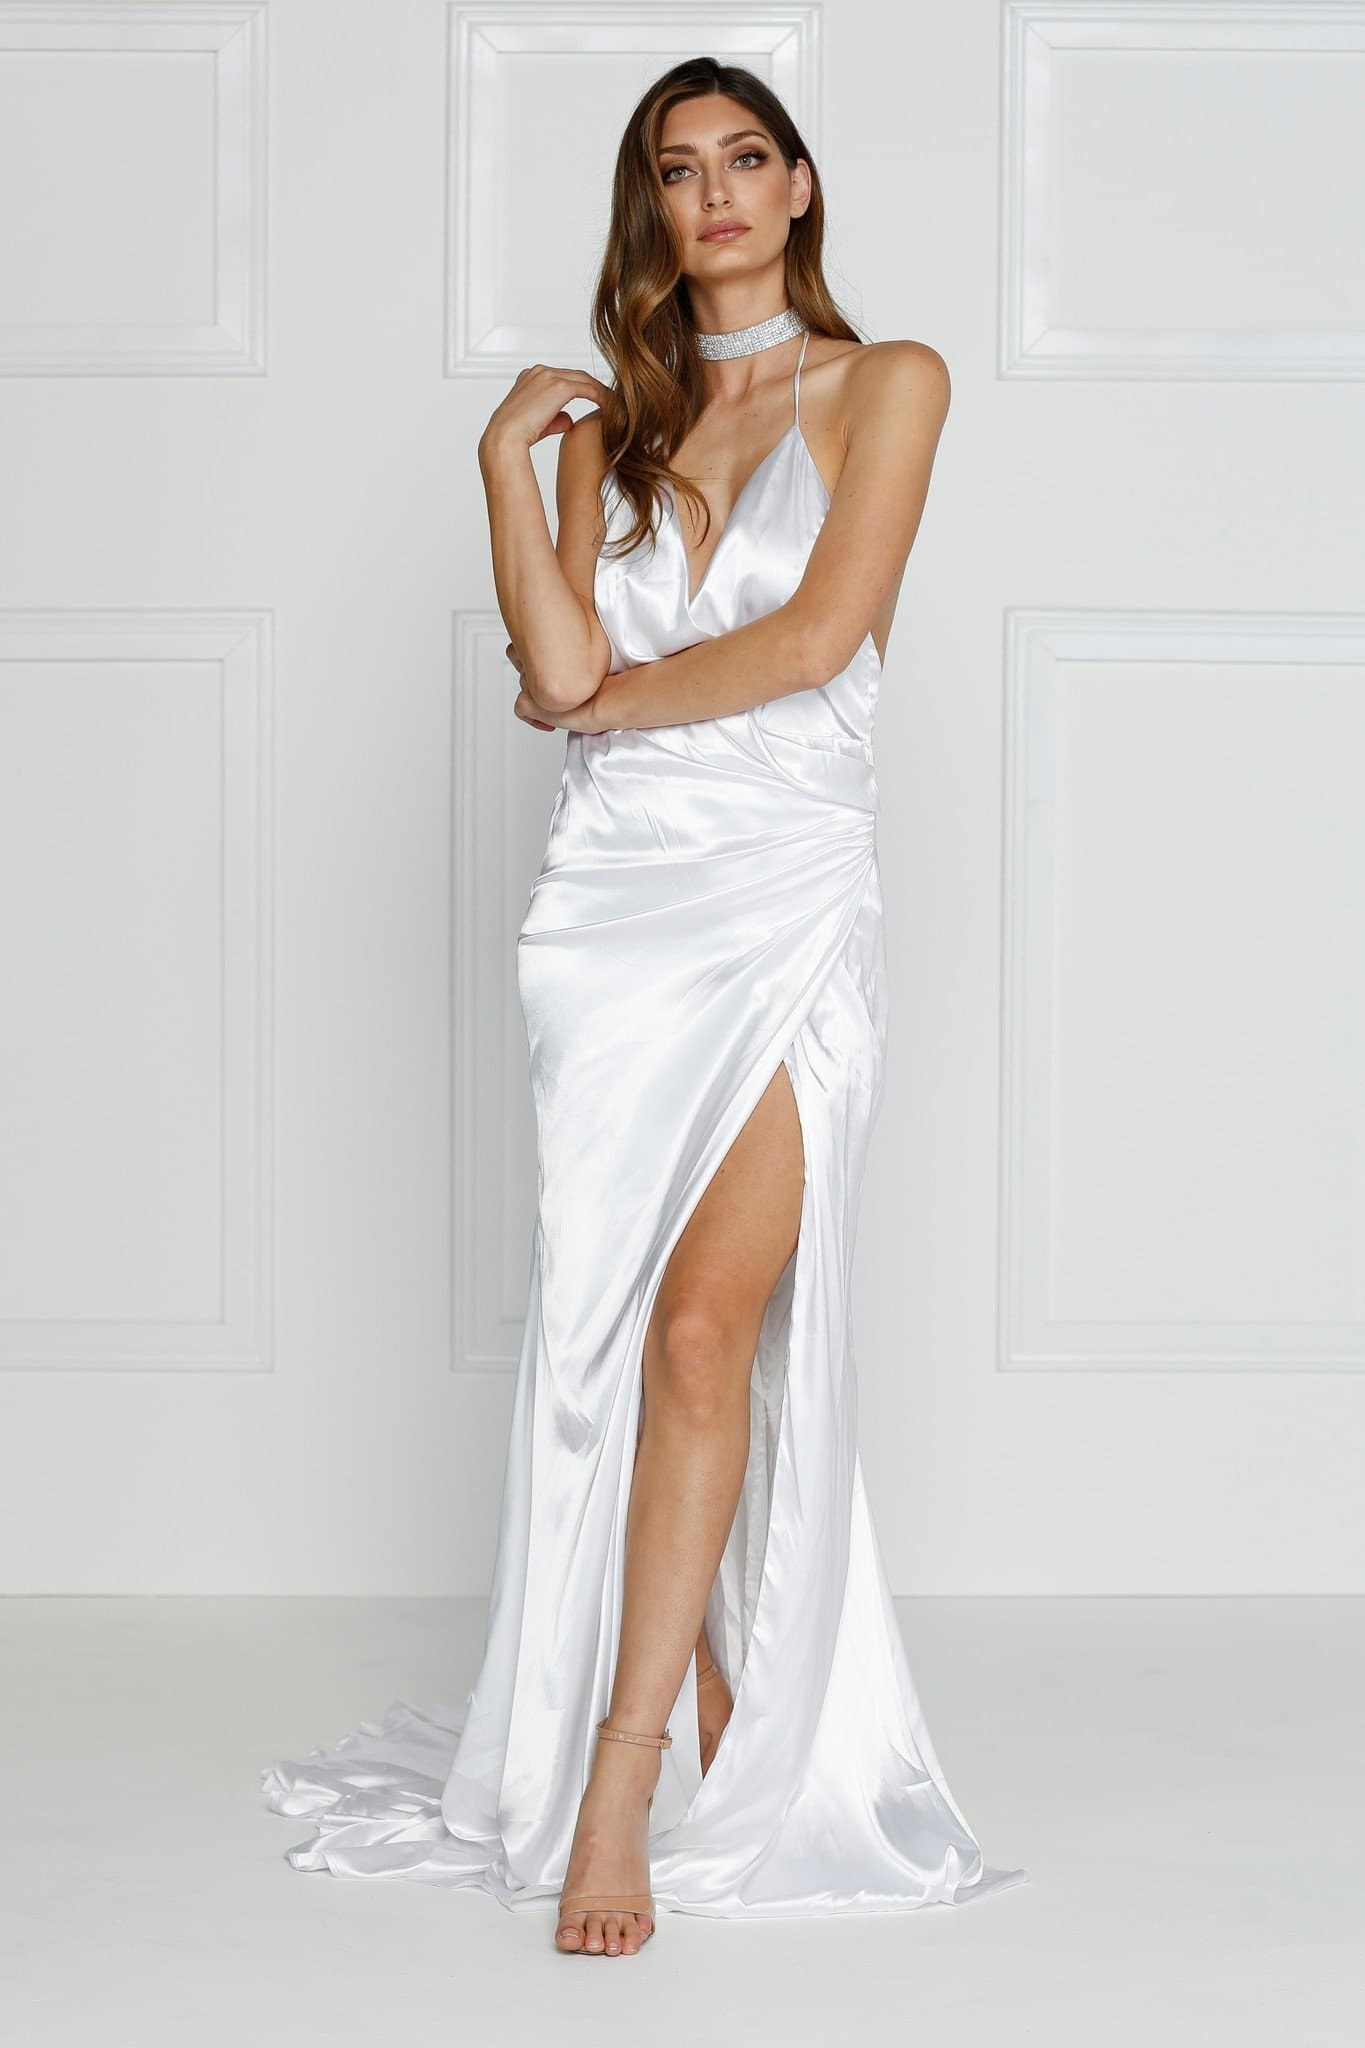 Guinevere - White Backless Satin Gown with Side Slit & Ruched Detail